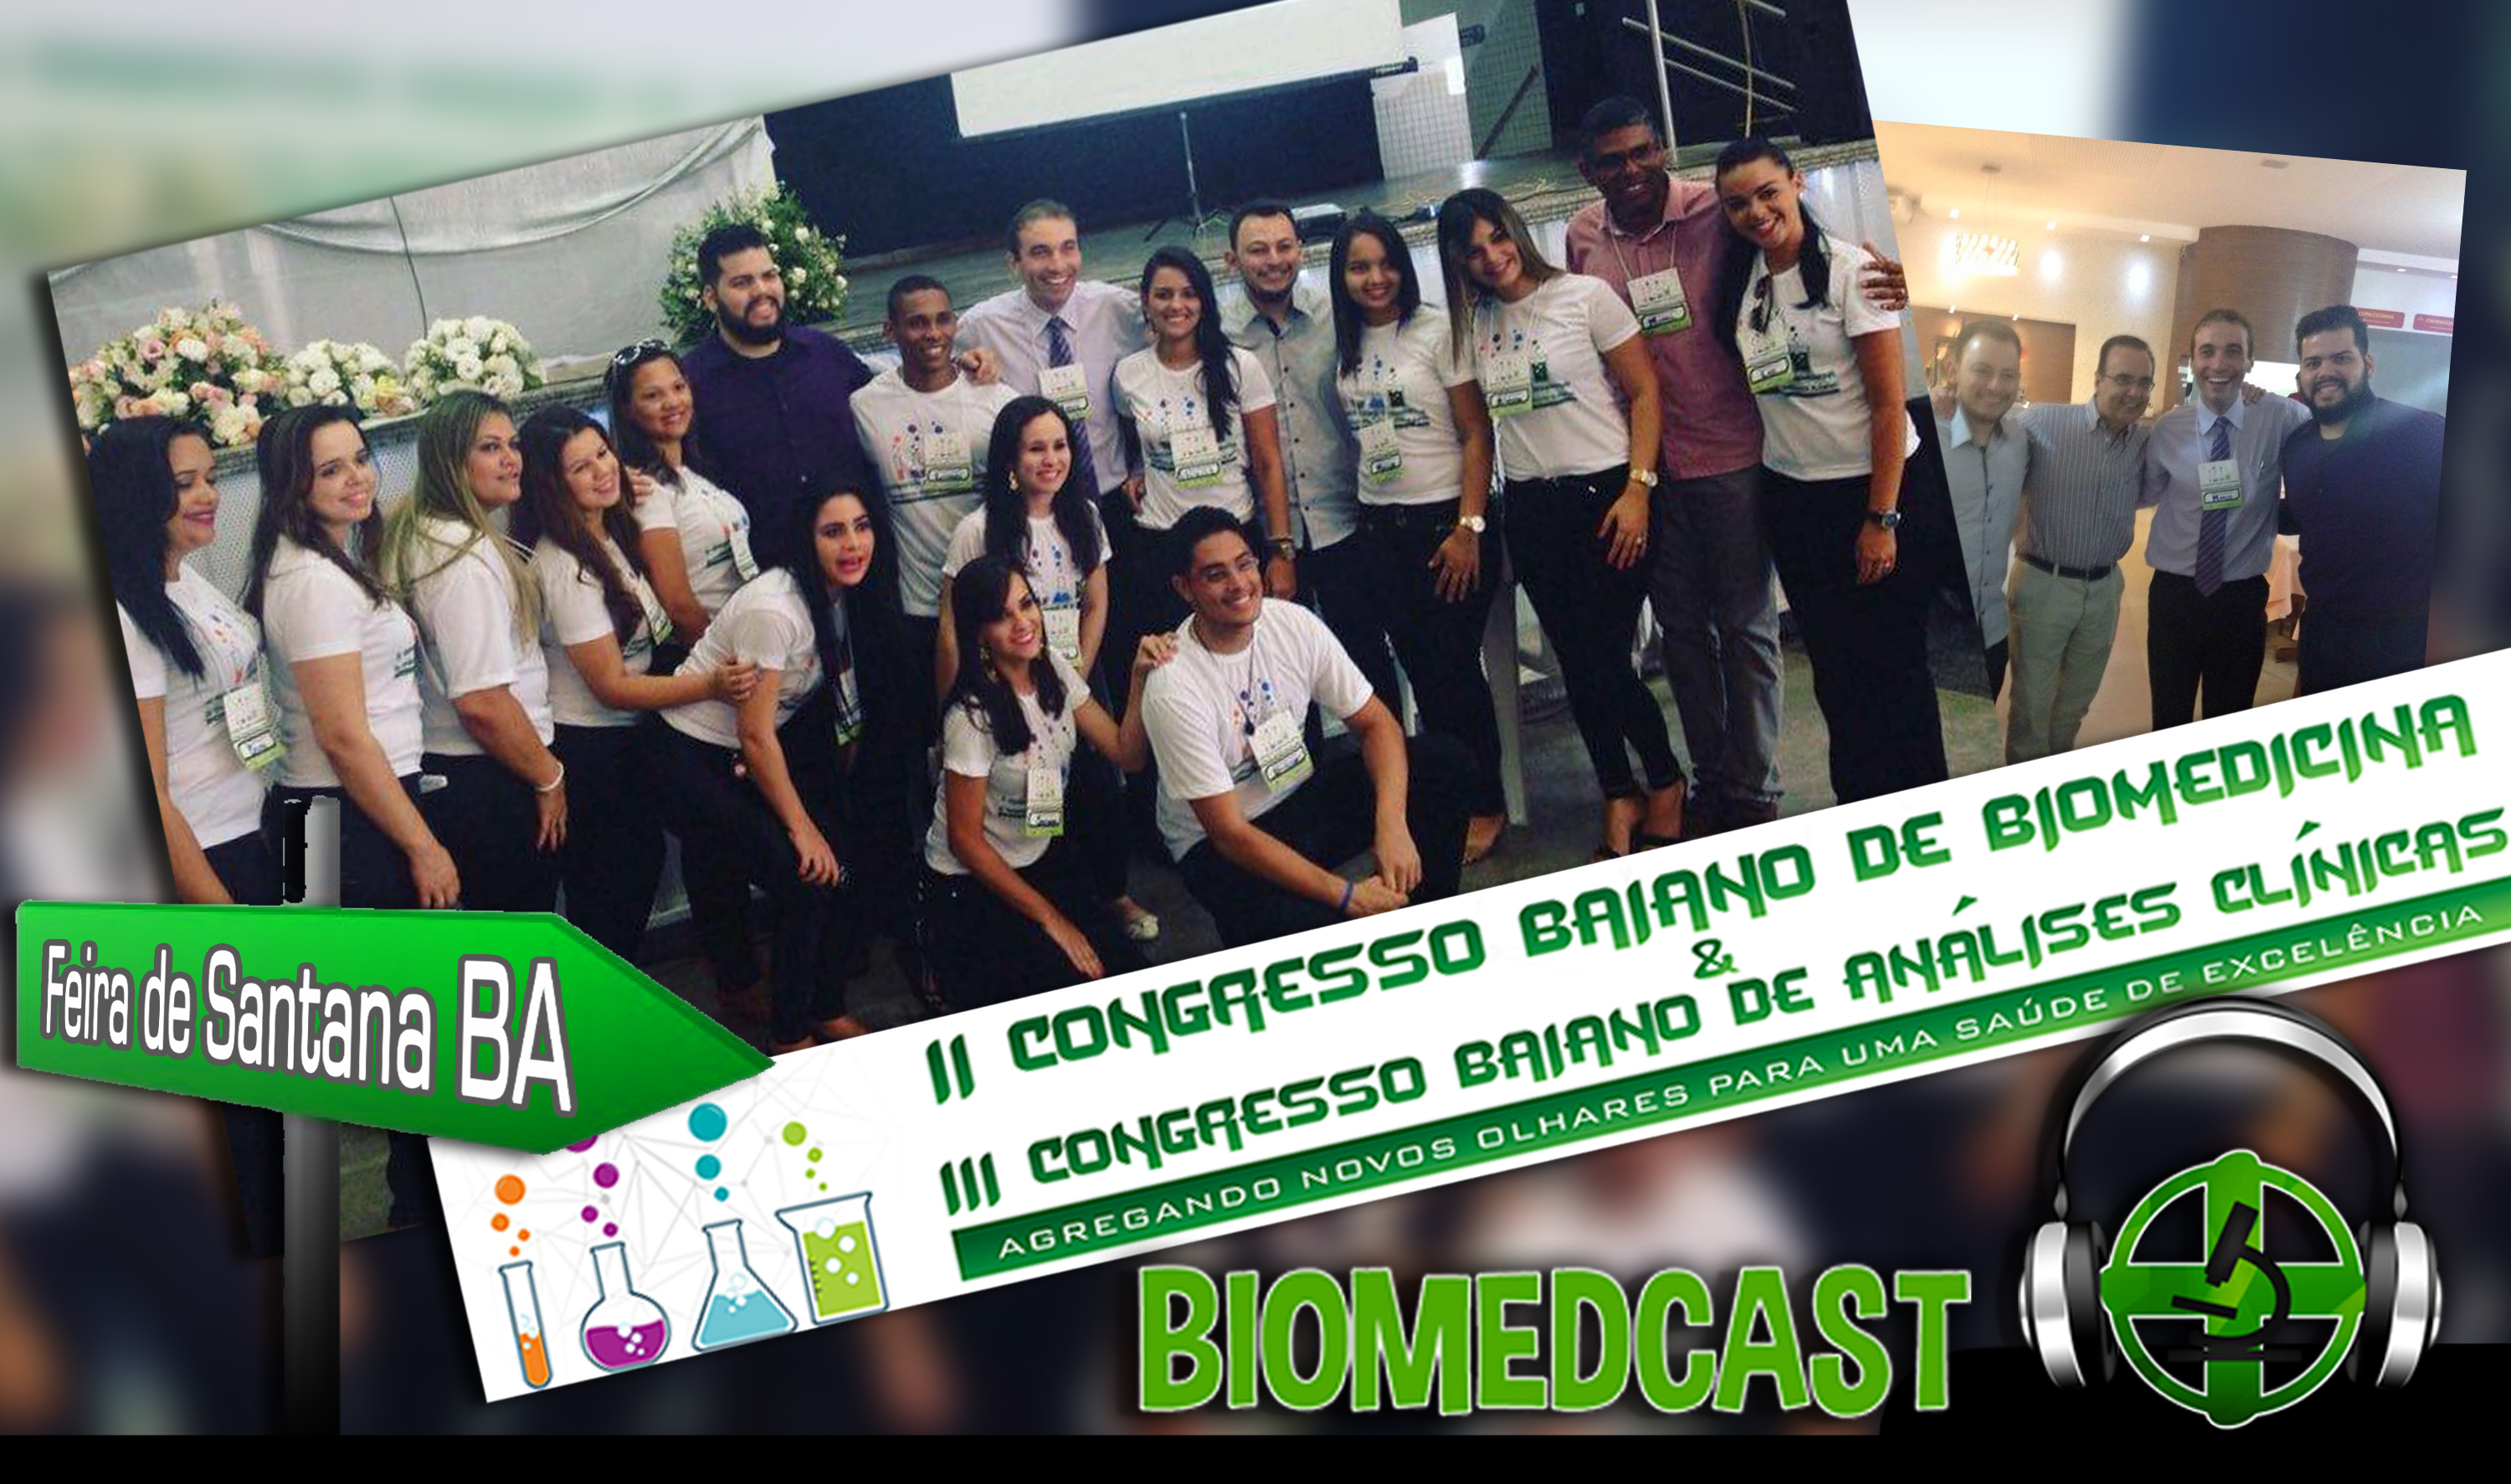 #22 Biomedcast na Bahia